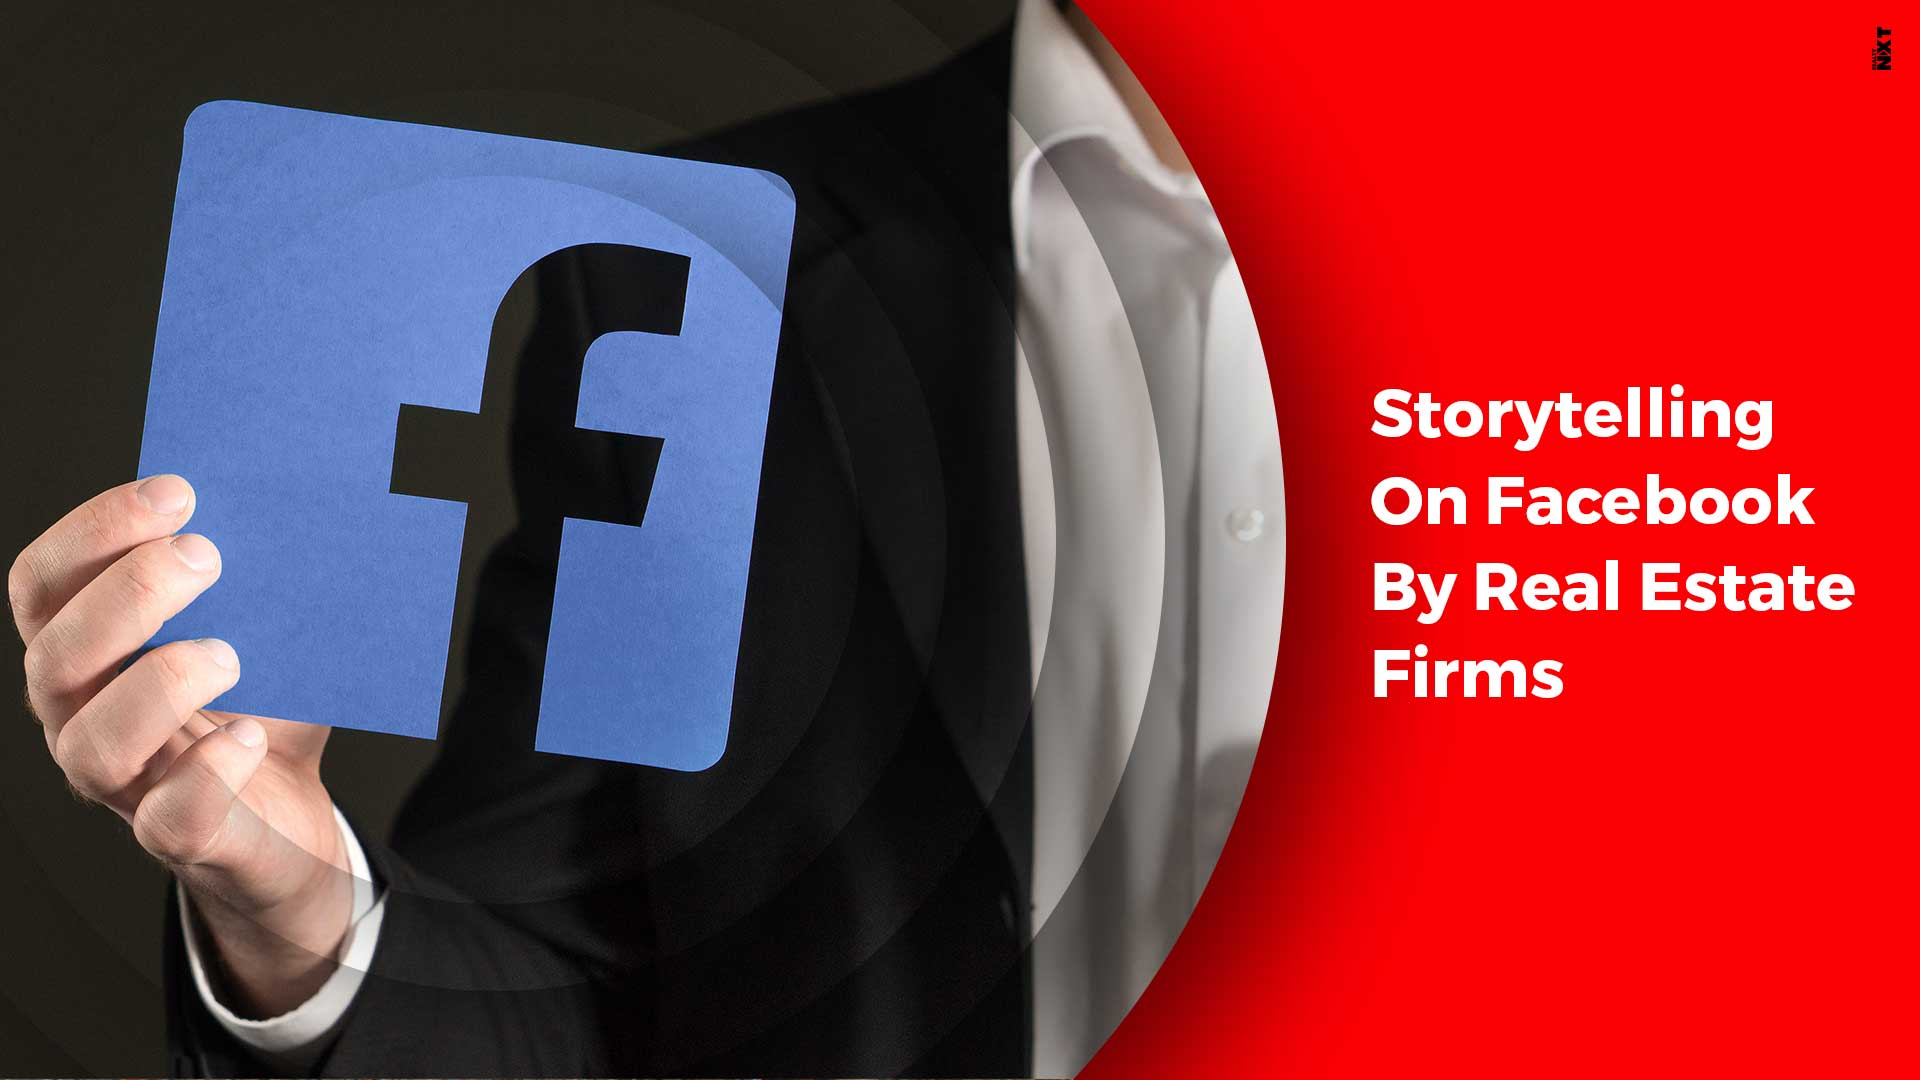 Top Storytelling Tips For Real Estate Firms On Facebook